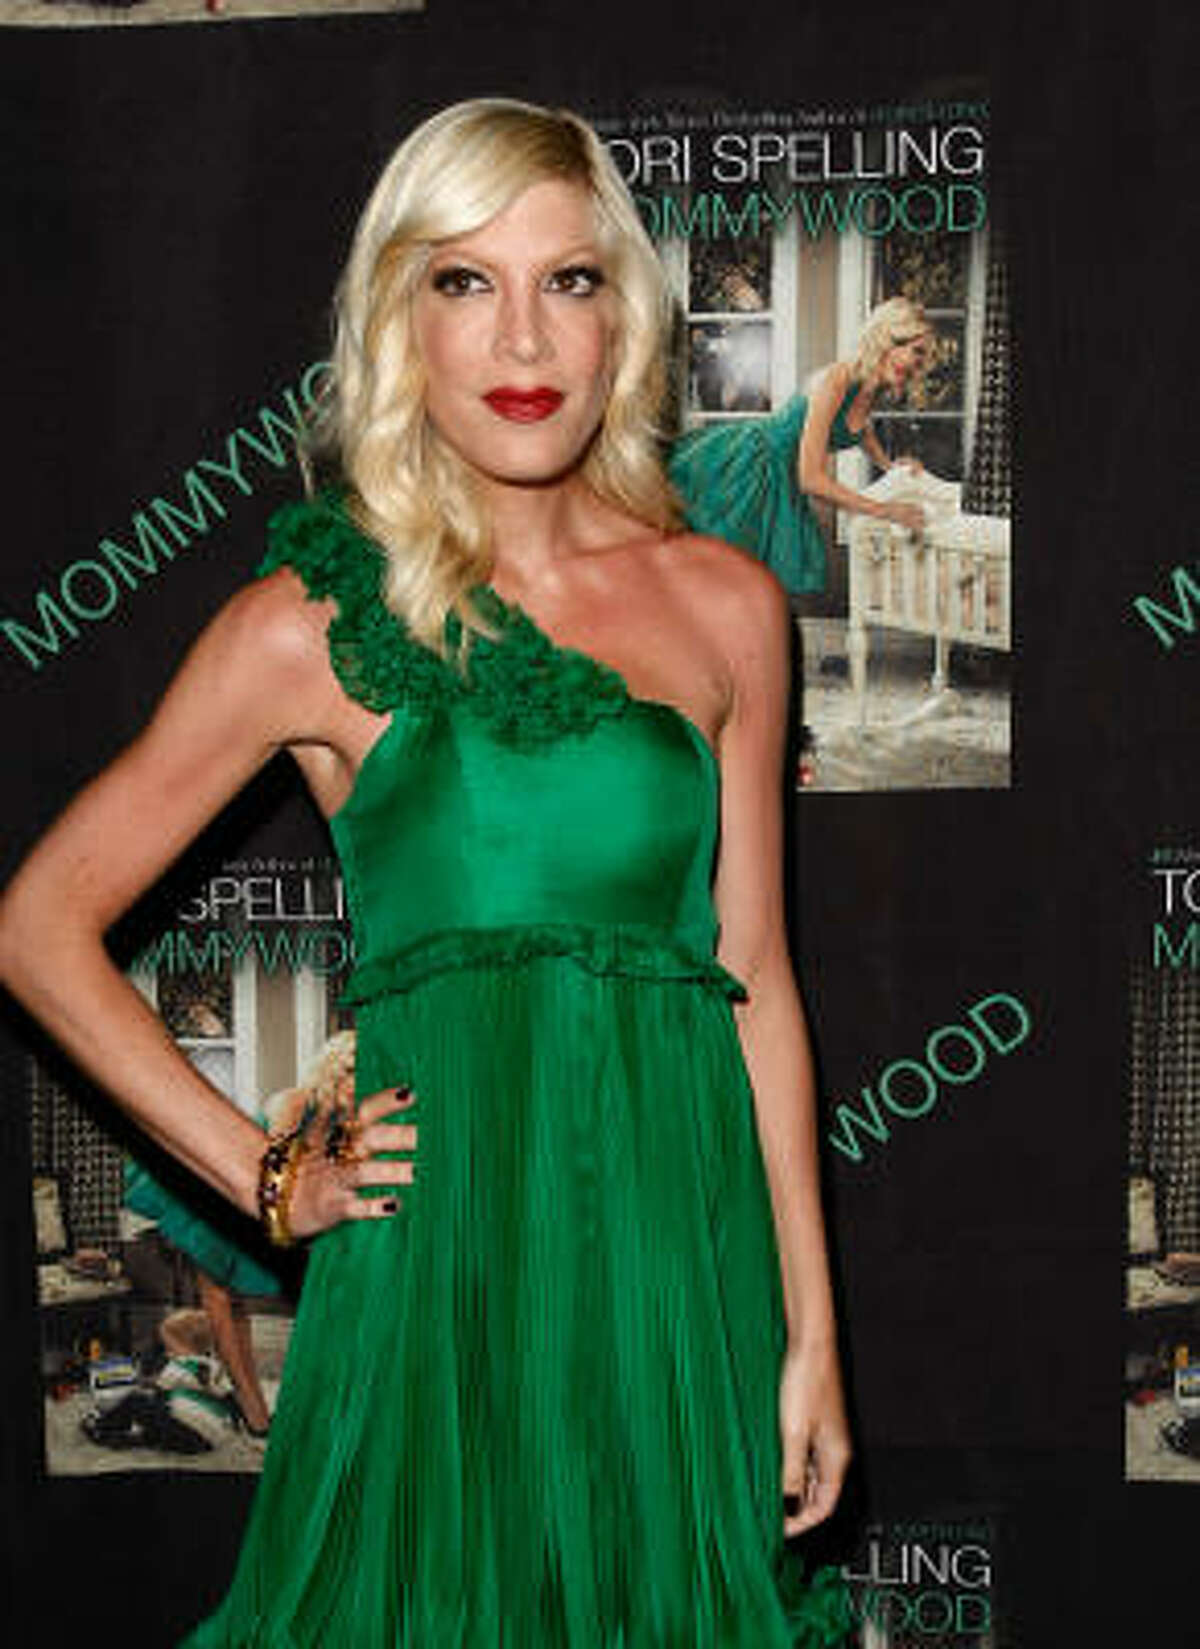 Tori Spelling recently lashed out at the public over scrutinizing her weight loss. She claims that her 5' 6